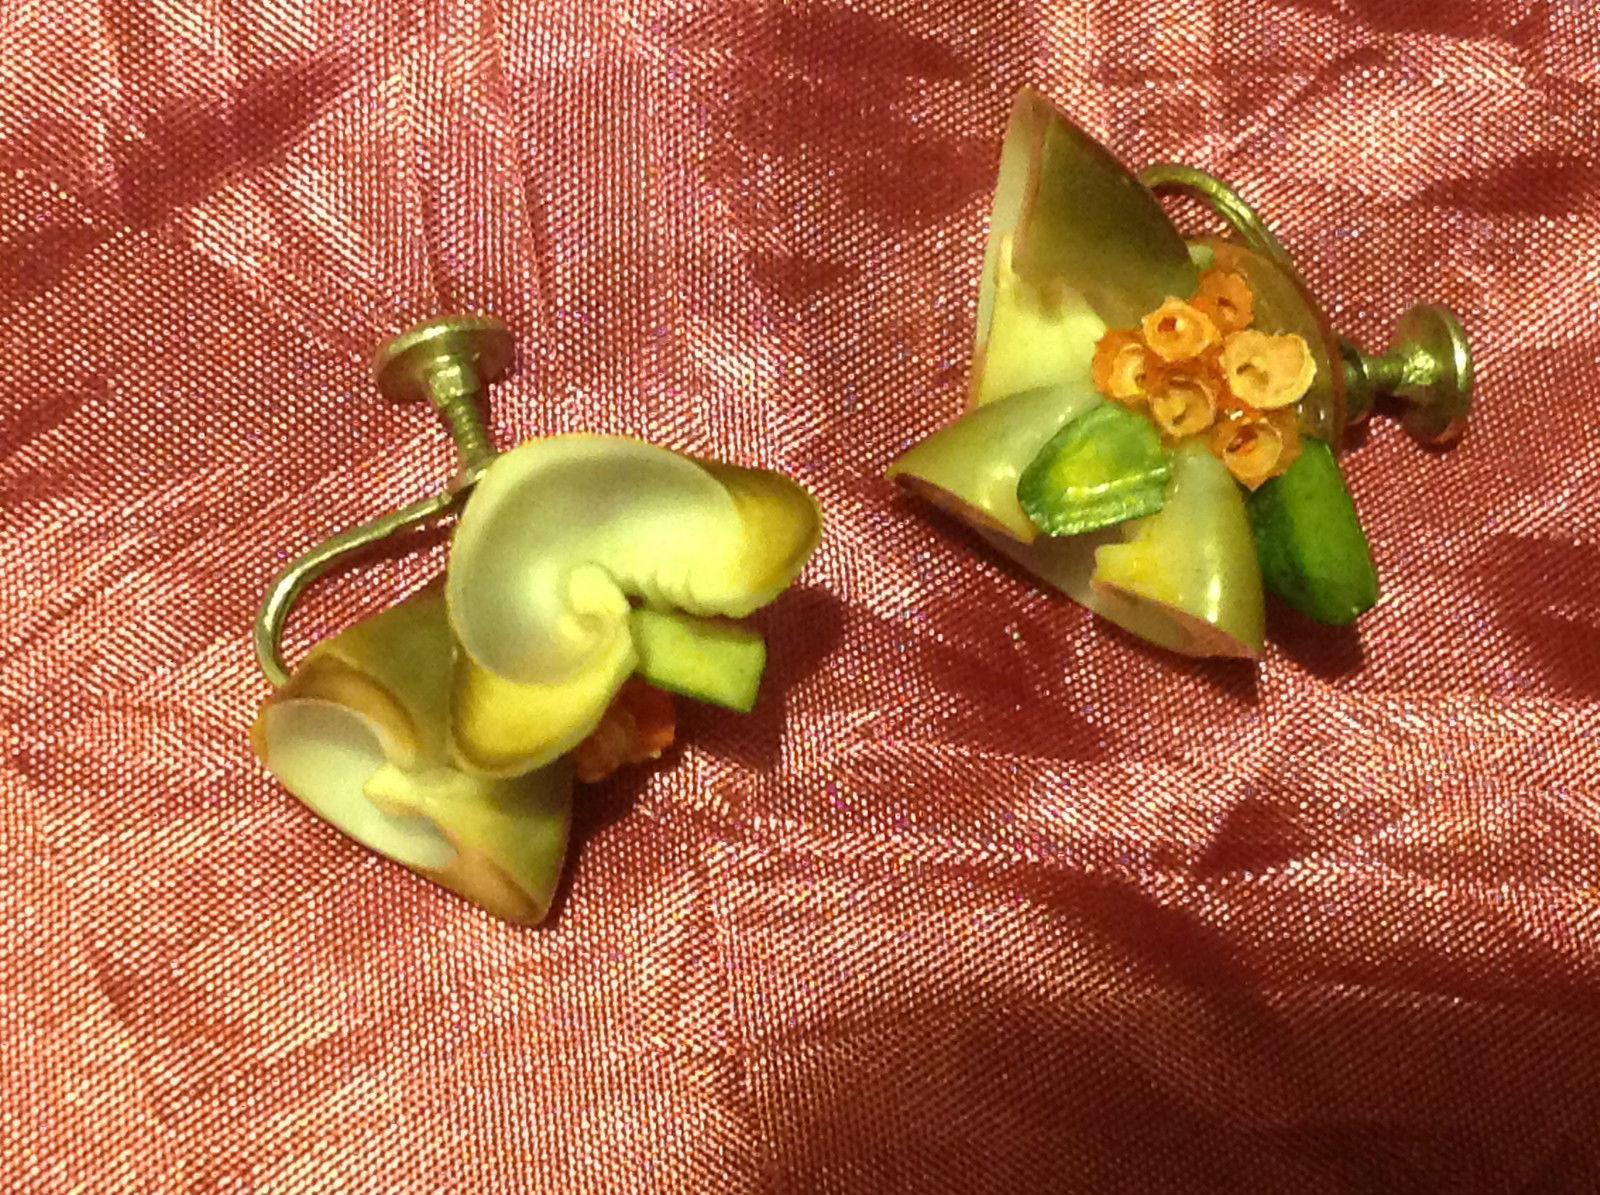 Pretty Seashell Vintage Screw-On Earrings with a Rose and Leaf 2 Inches